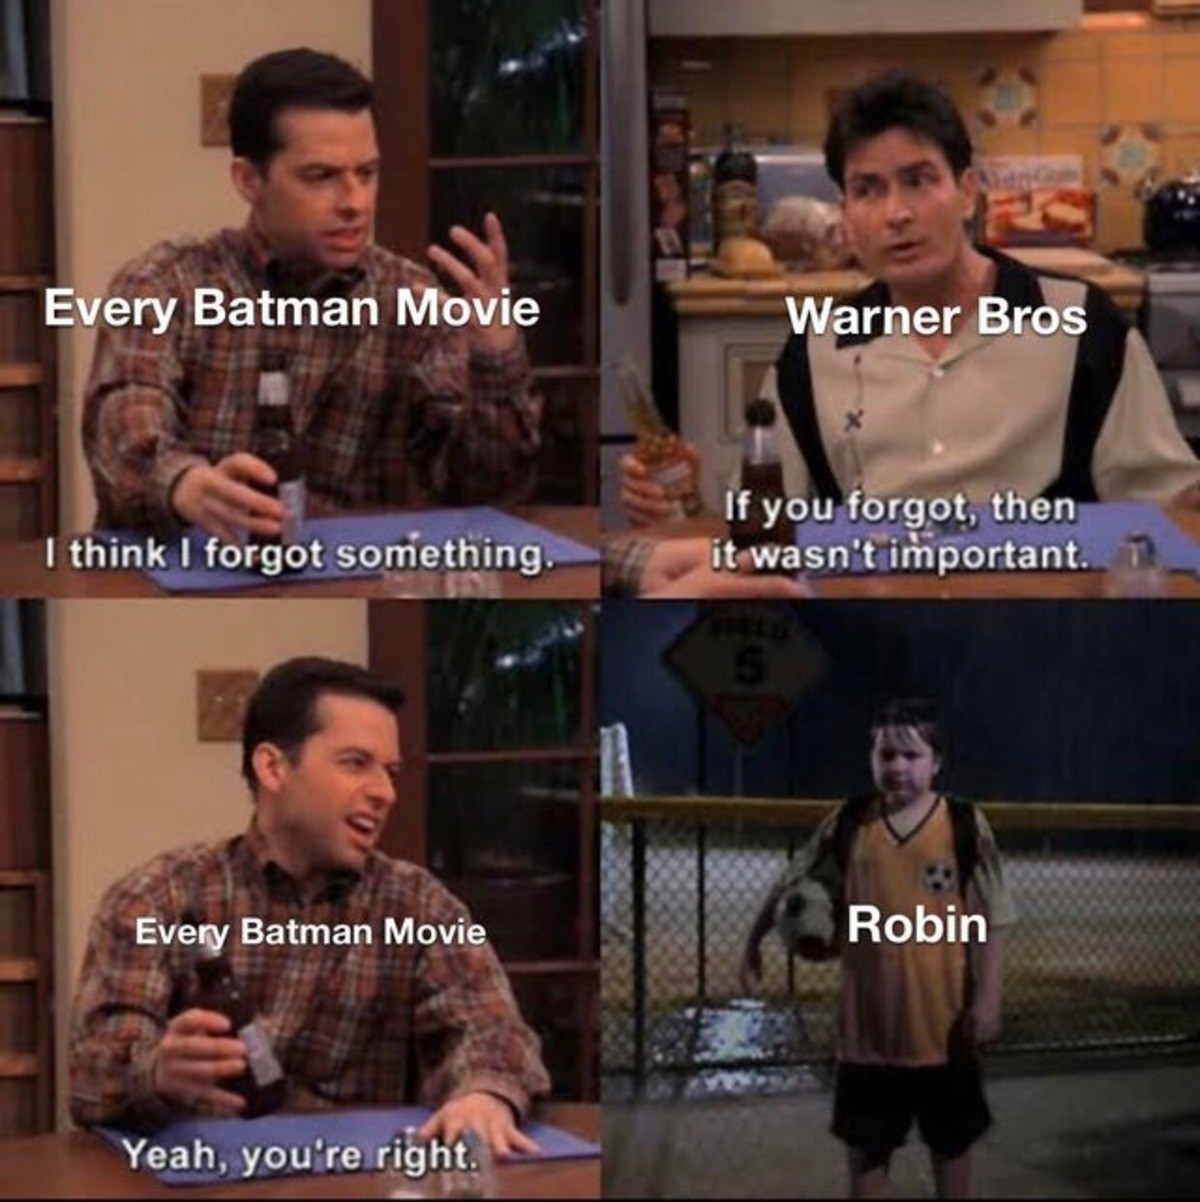 frequent Seahorse. .. christian bale made it a part of his contract that robin was to never show up in the films he was in.